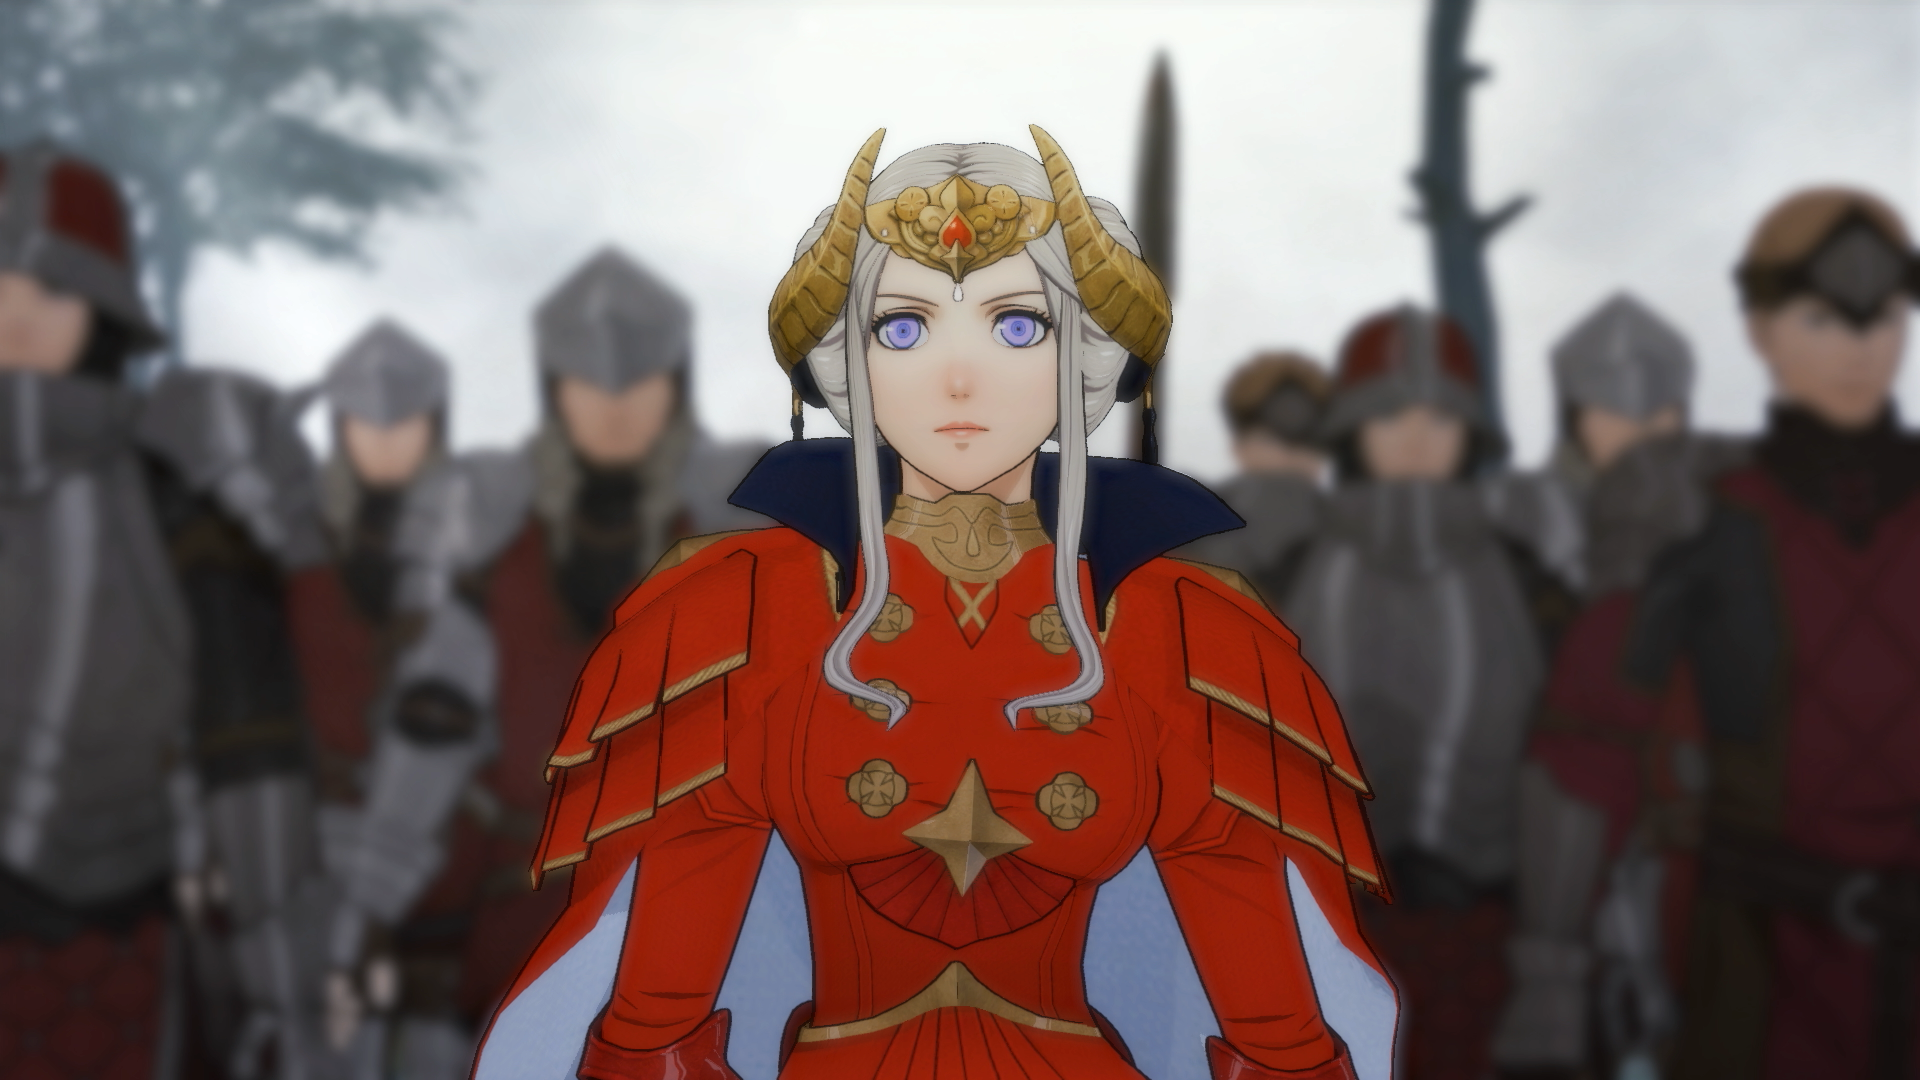 Fire Emblem: Three Houses Is Definitely Going To Make Me Cry For My Precious Children